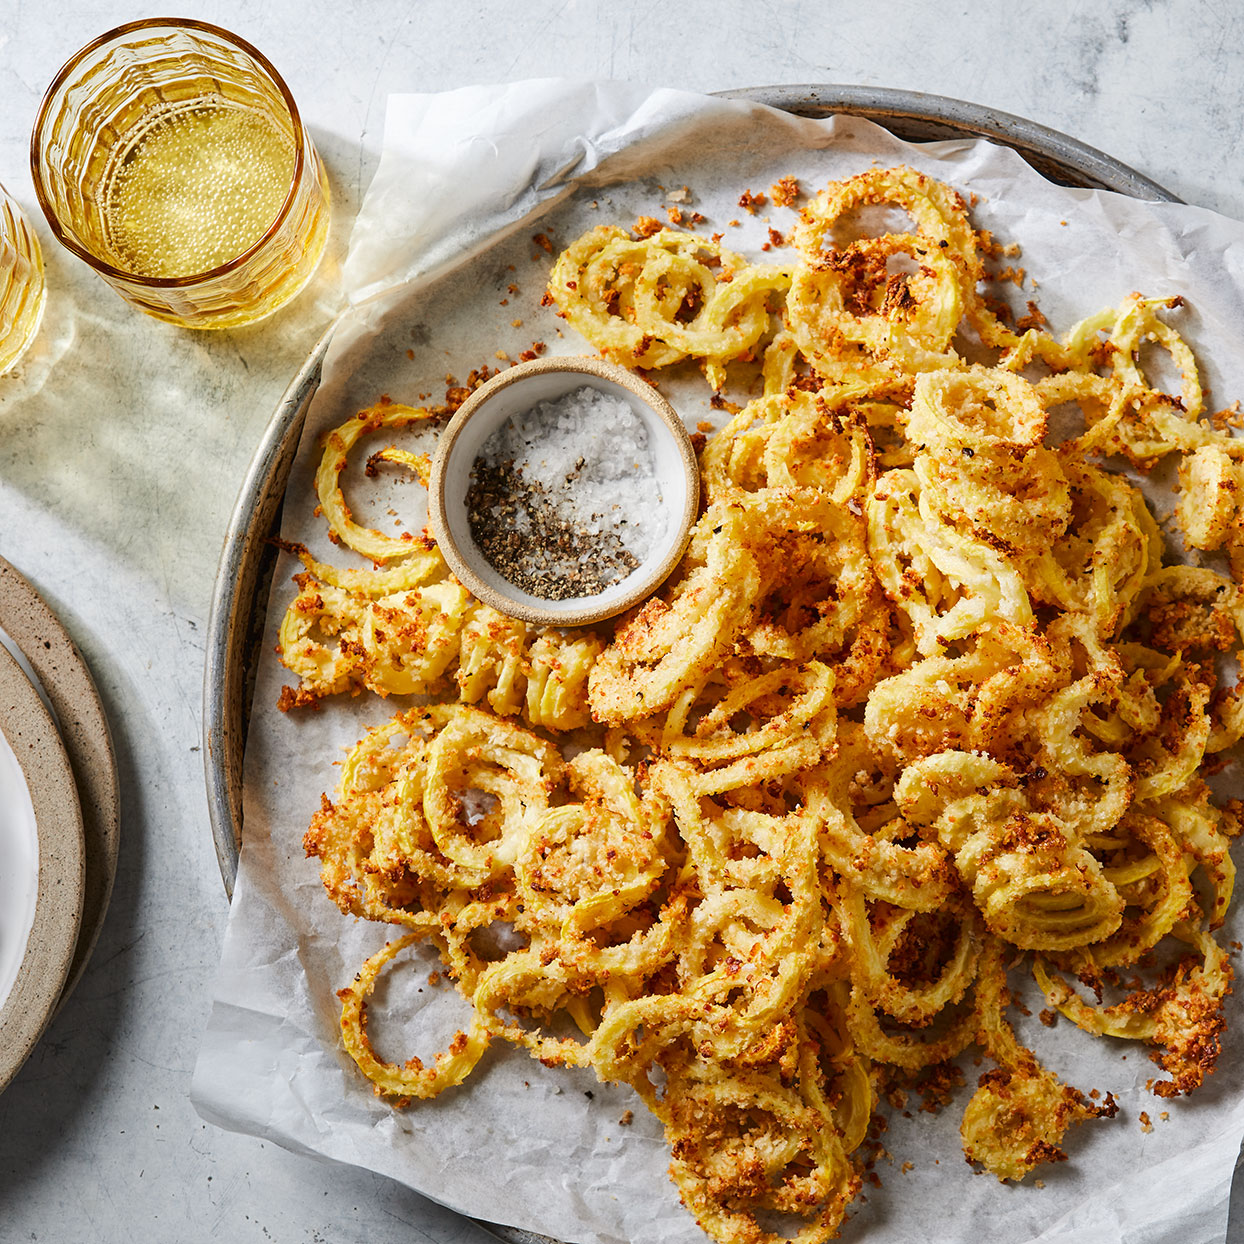 Baked Garlic-Lemon Summer Squash Curly Fries